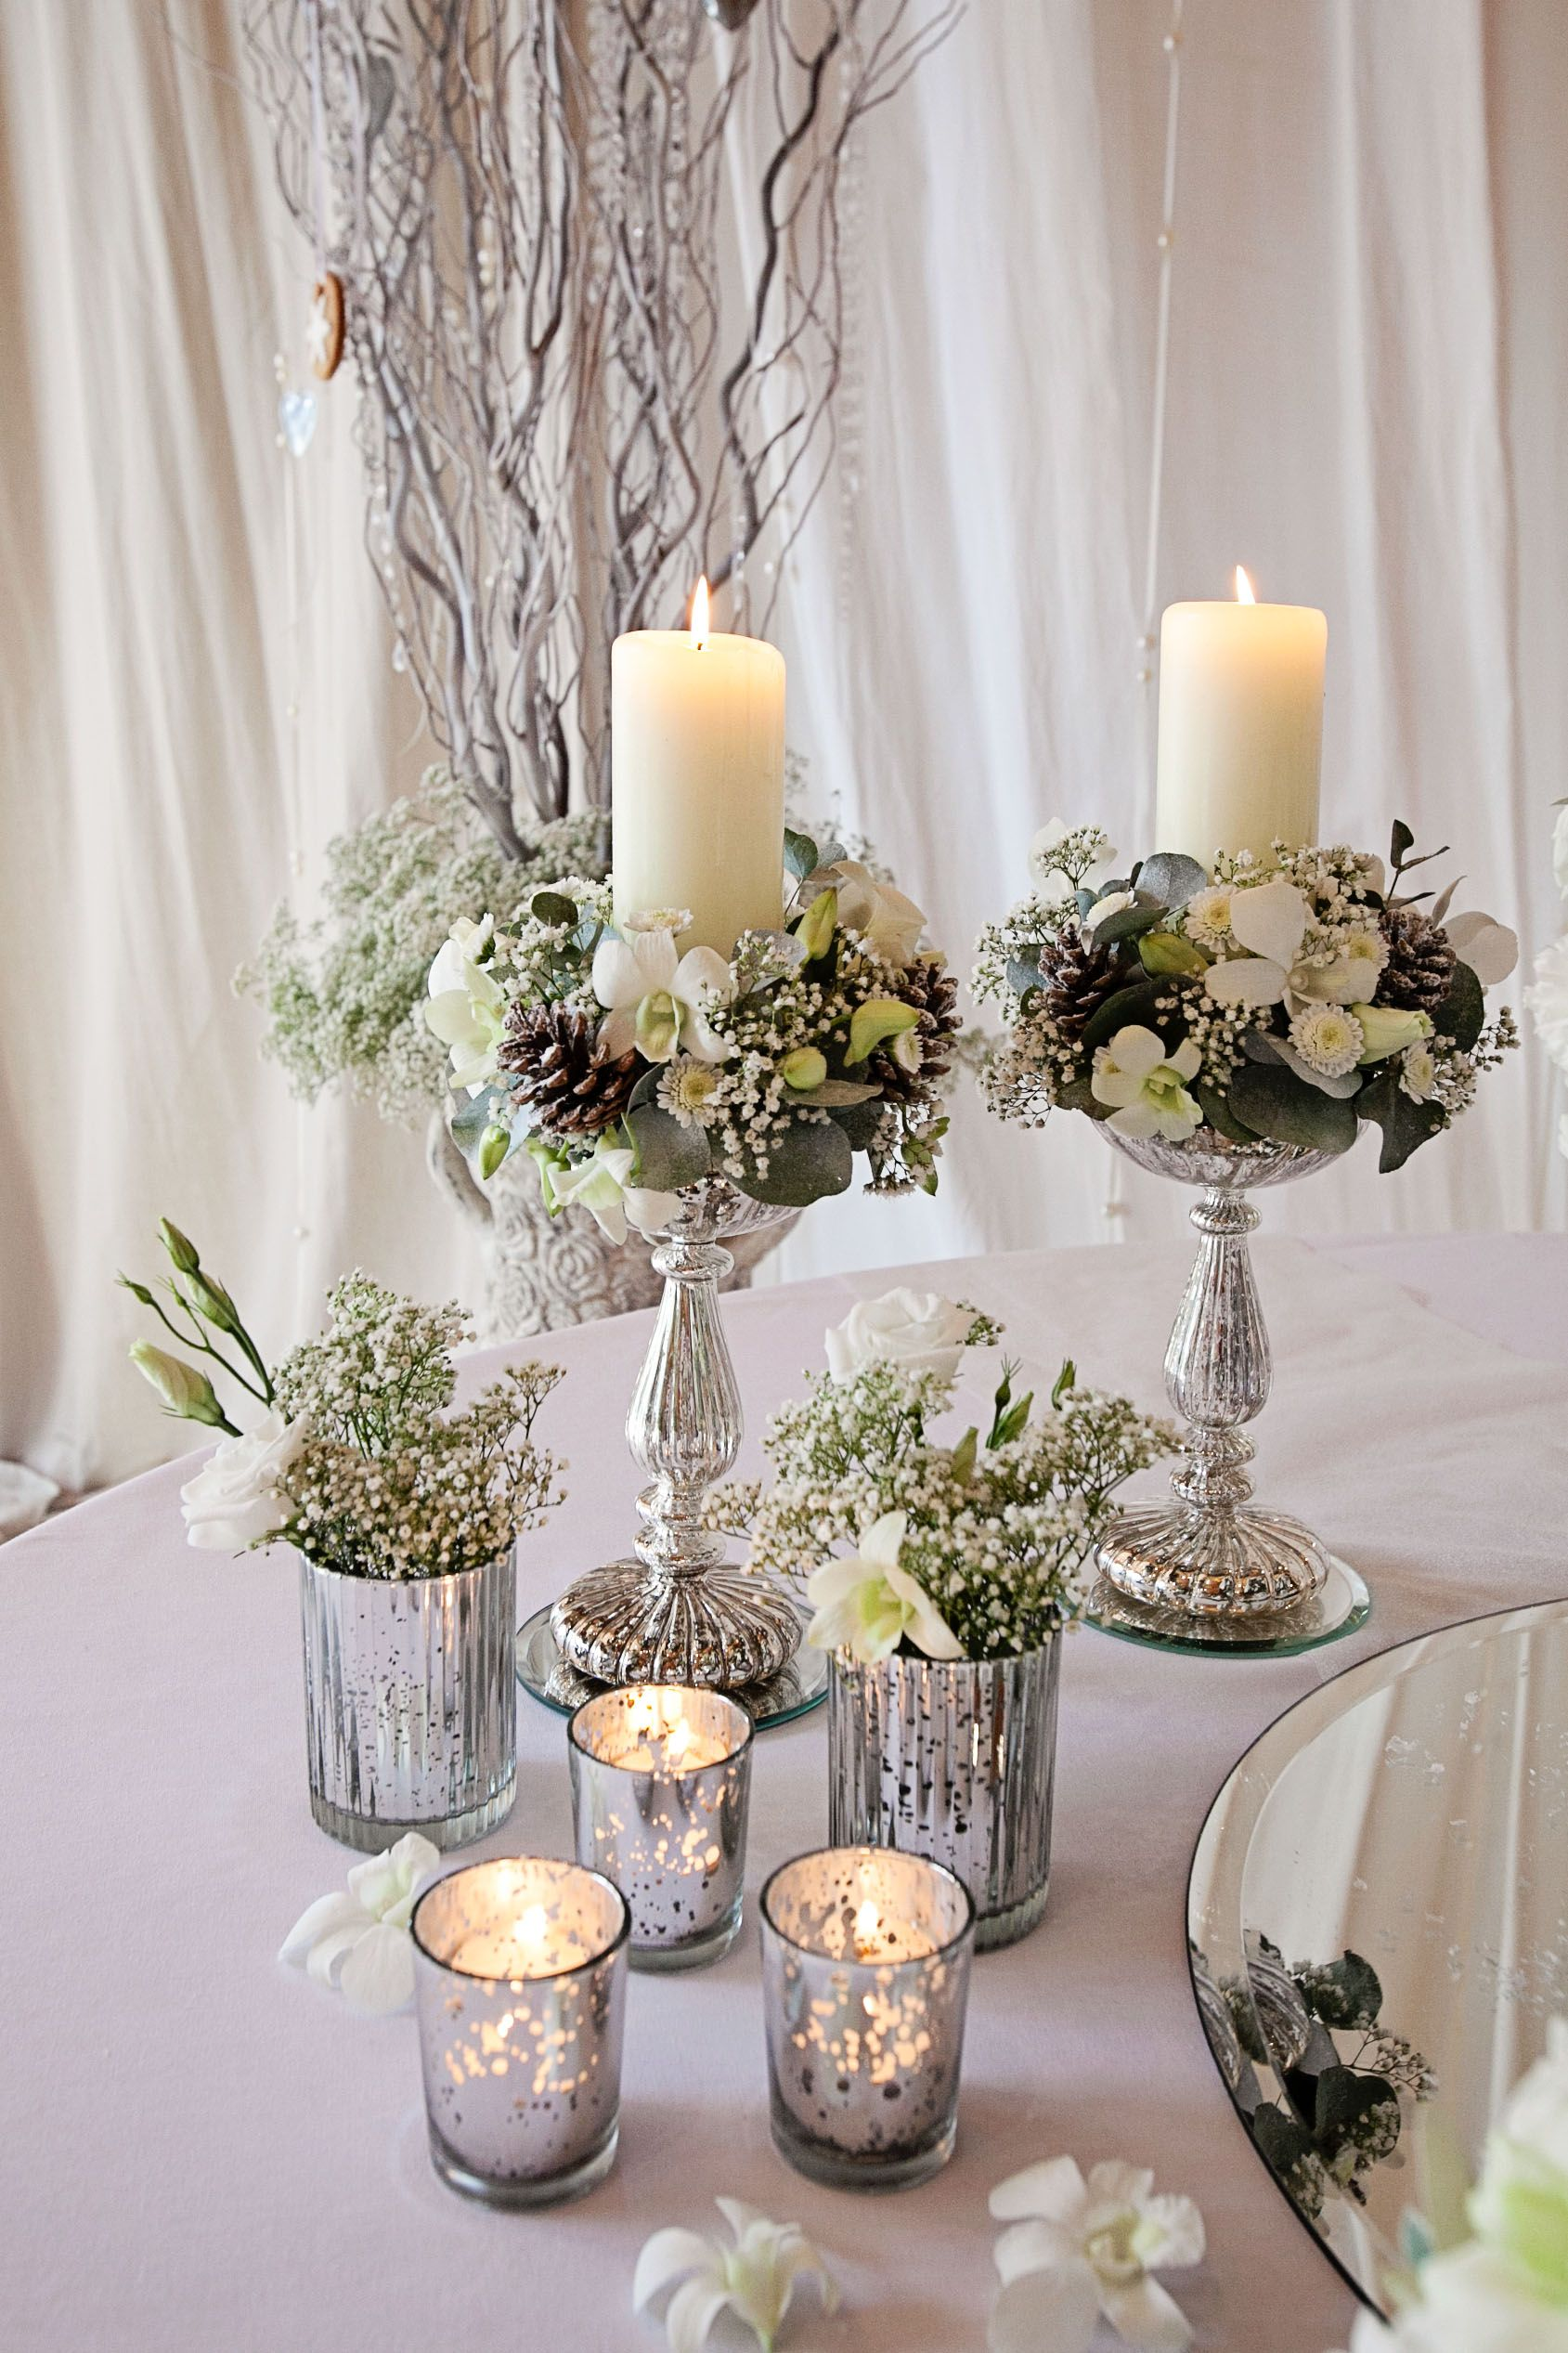 tiara flower arrangements Candle stand arrangements and